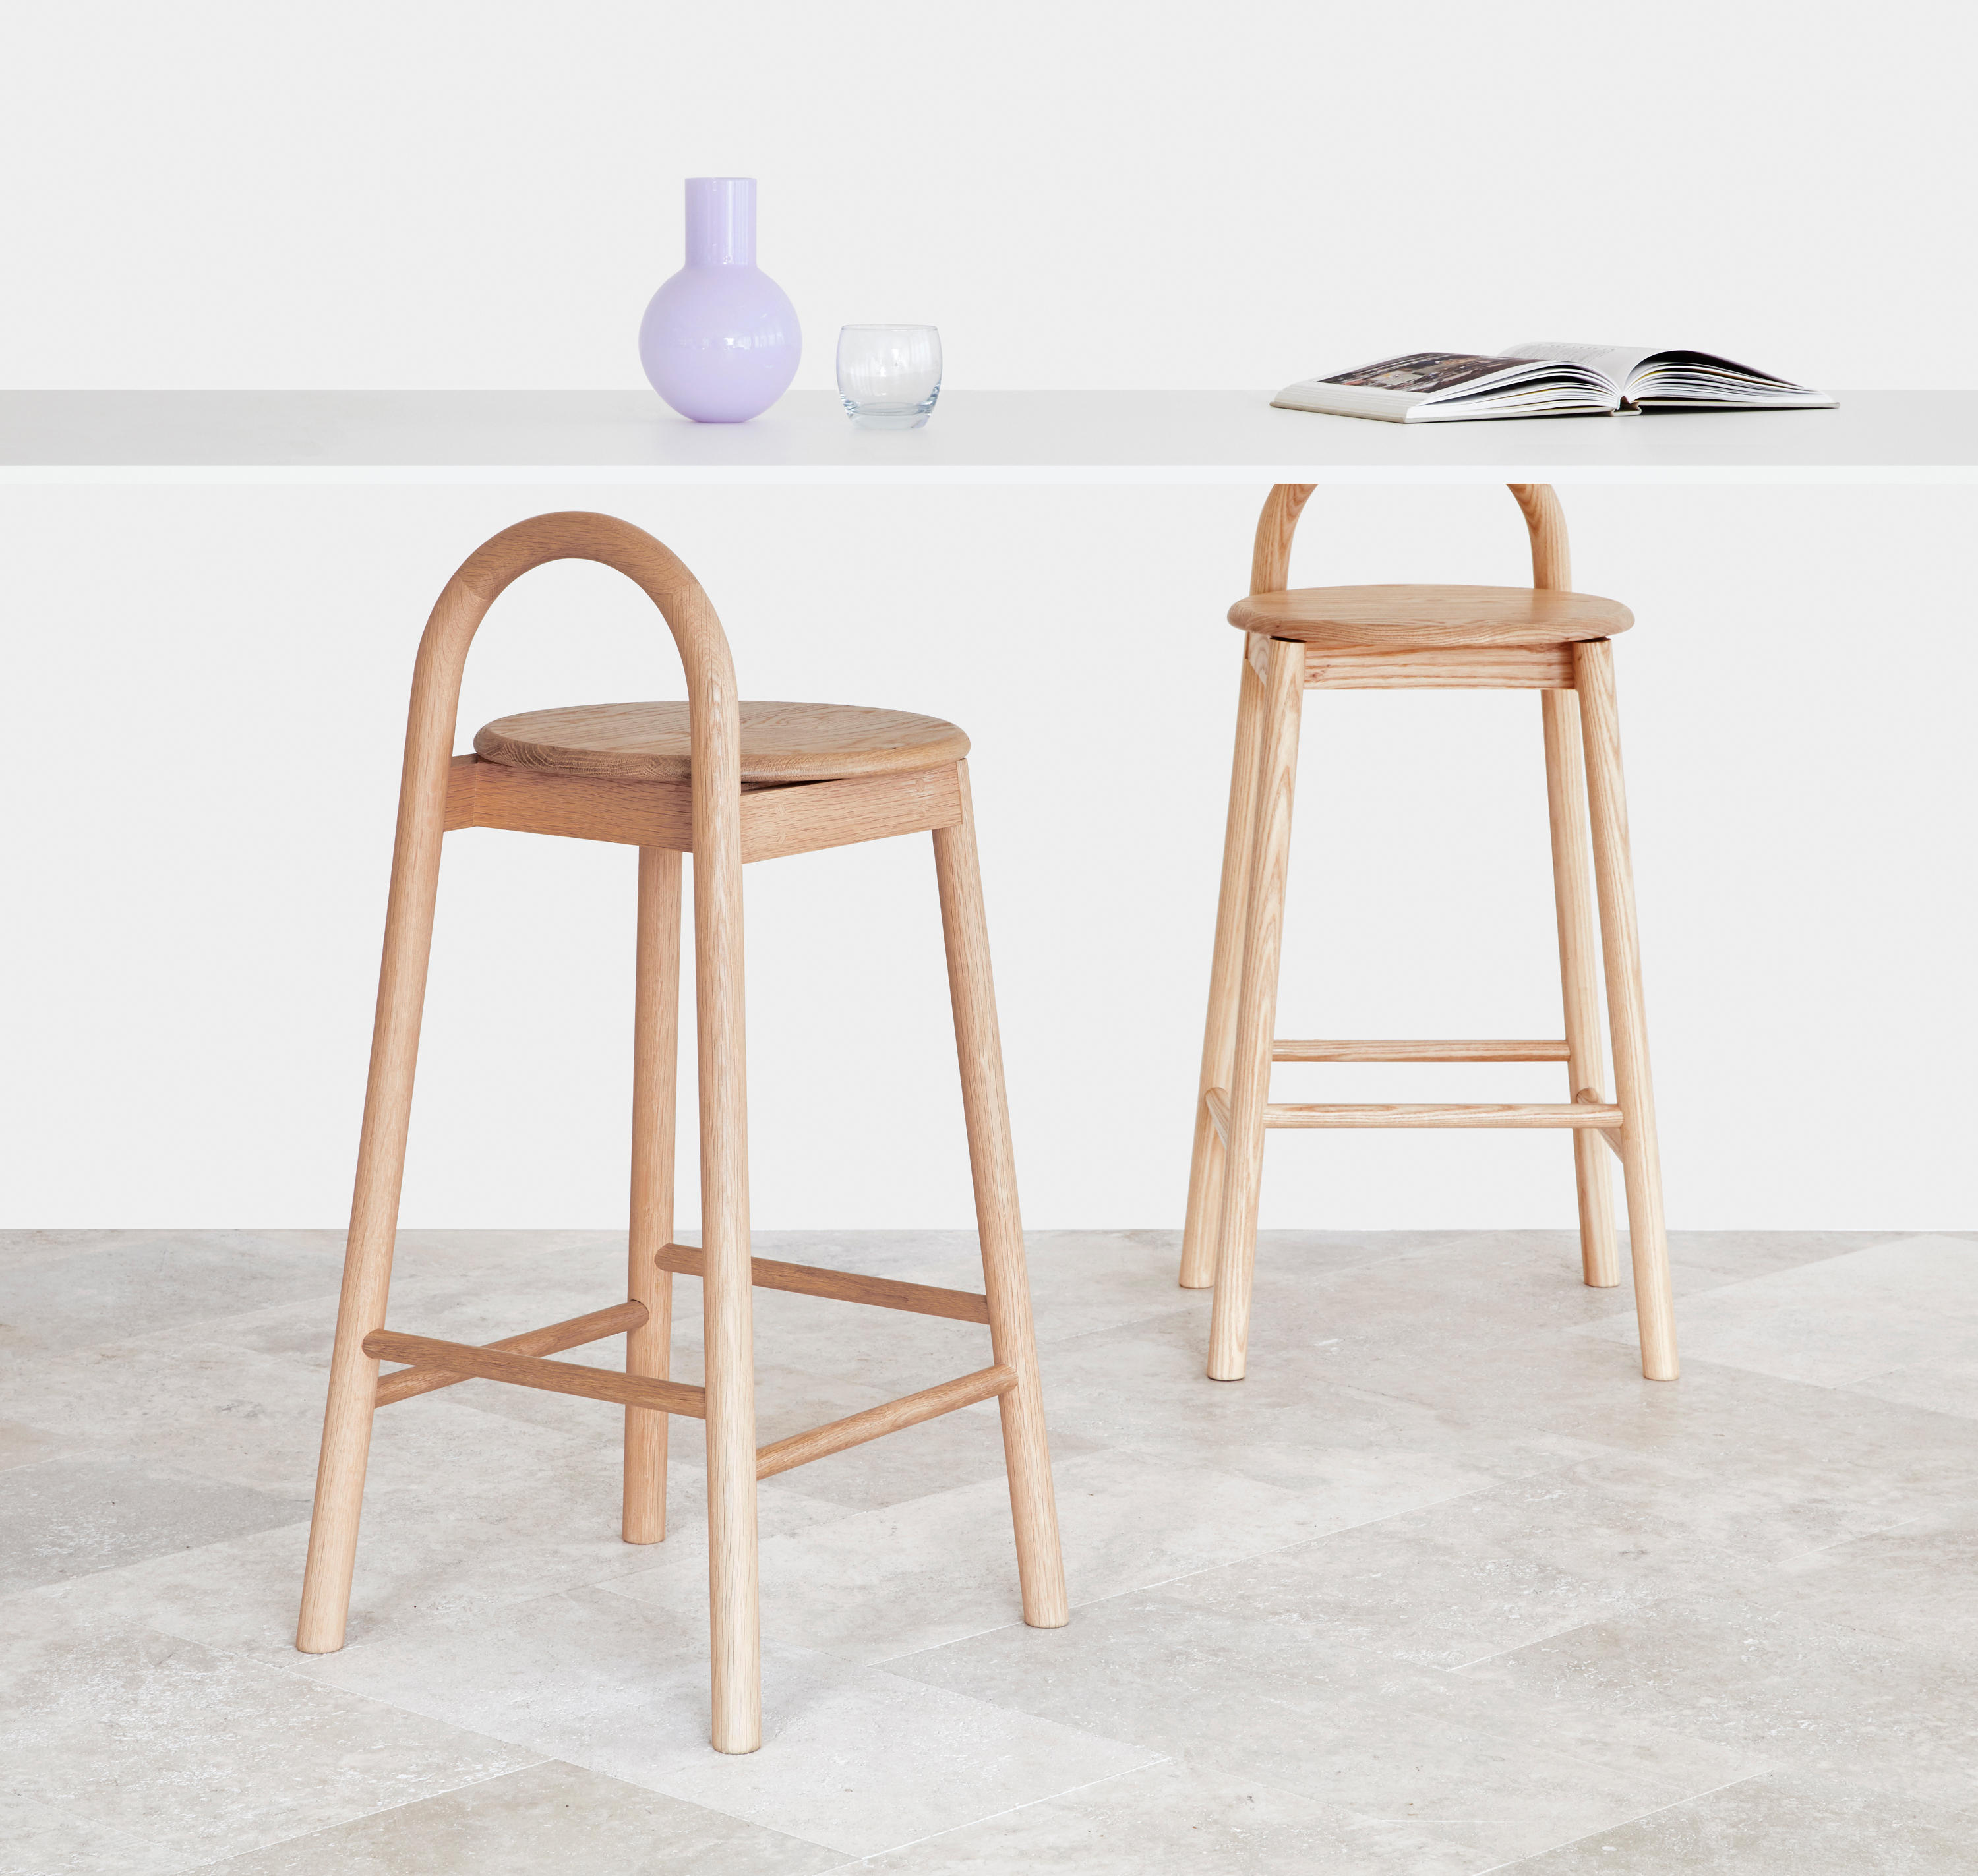 Outstanding Bobby Stool Stools From Designbythem Architonic Gmtry Best Dining Table And Chair Ideas Images Gmtryco